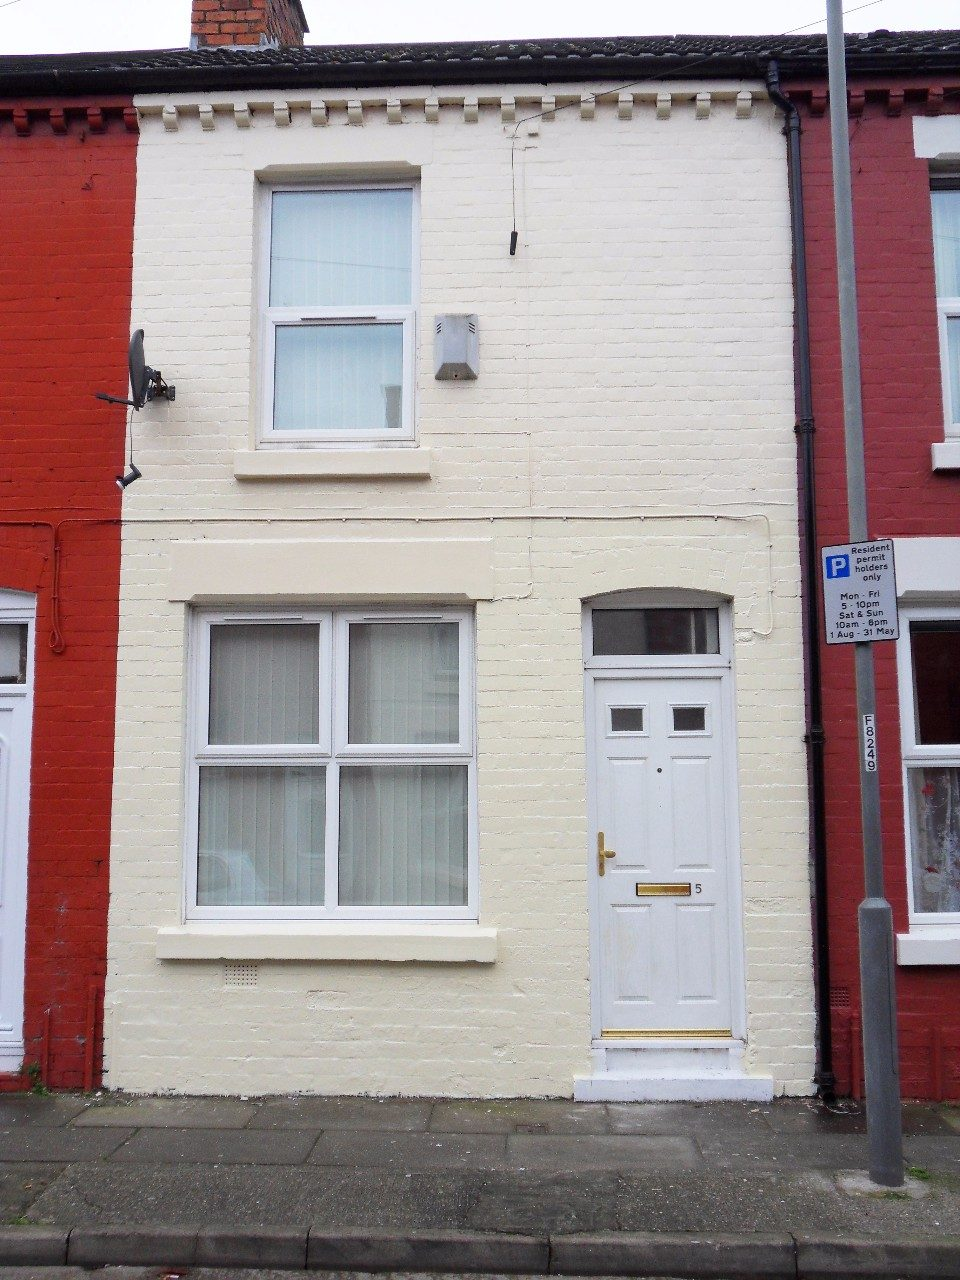 2 Bedroom House To Let Scorton Street Liverpool L6 No